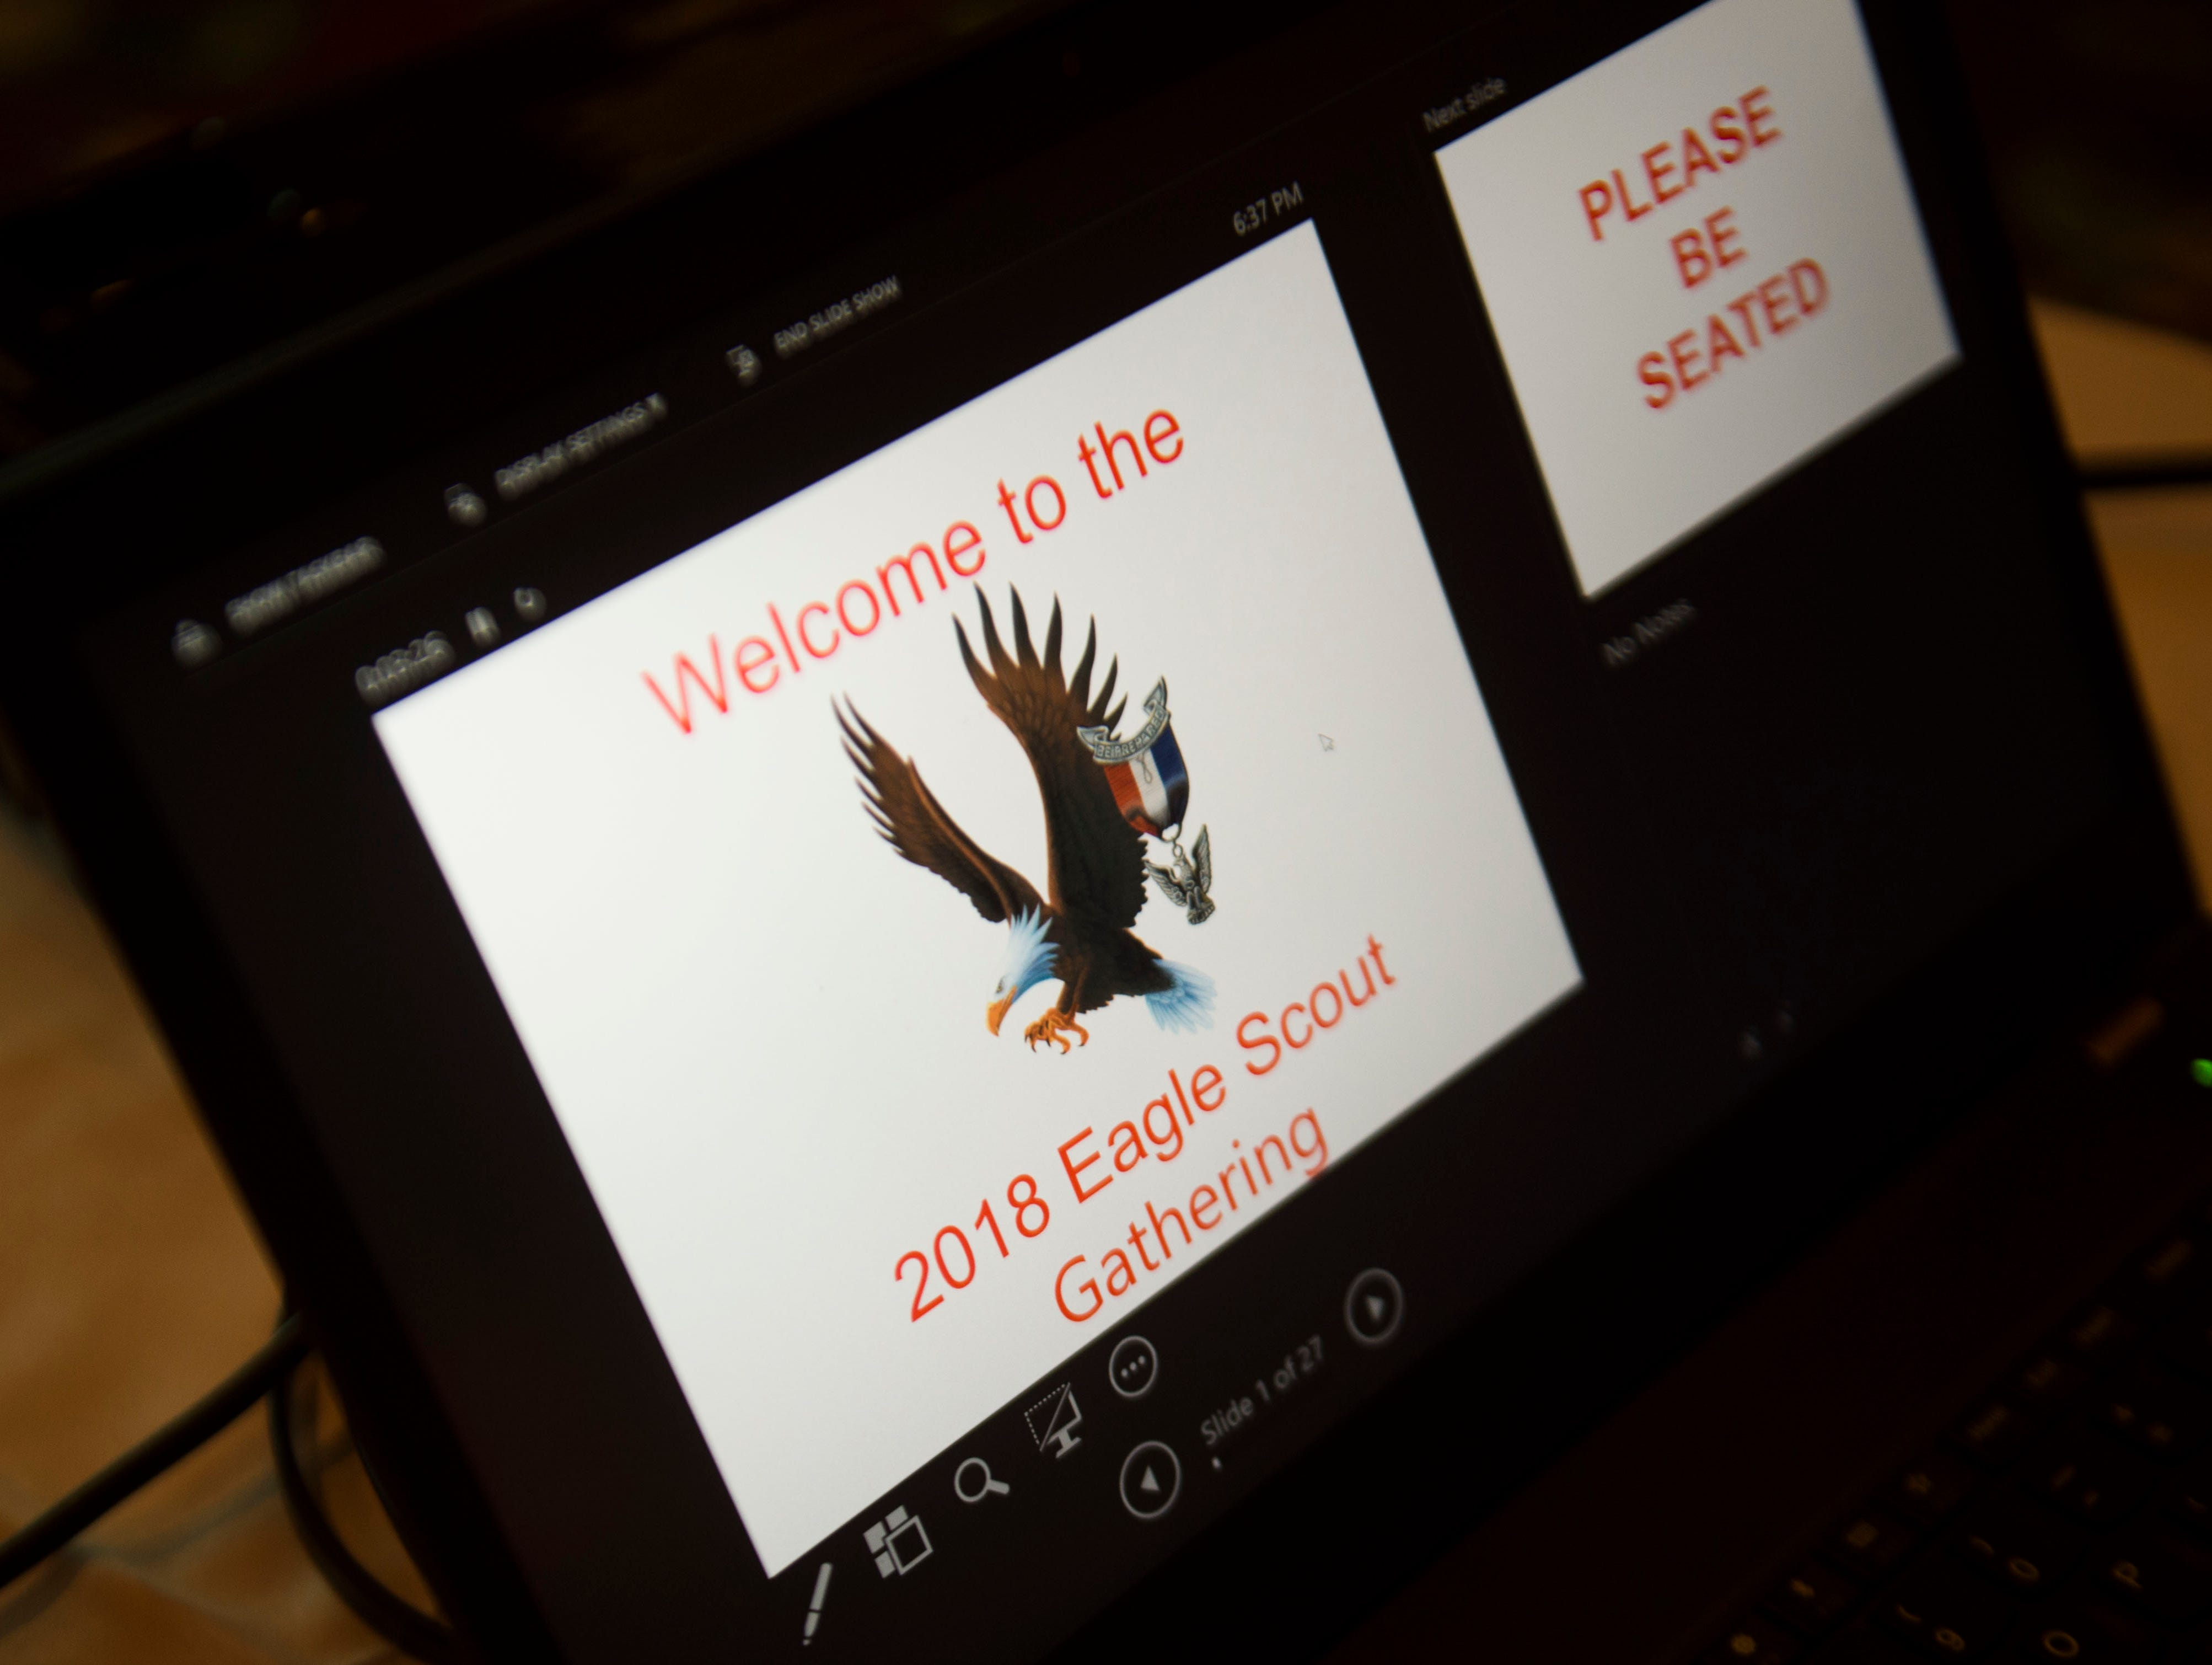 A computer at the 2018 Eagle Scout gathering held at Hotel Knoxville Thursday, Nov. 15, 2018. Sam Beall received the Silver Beaver award at the event, which is the highest award in scouting.